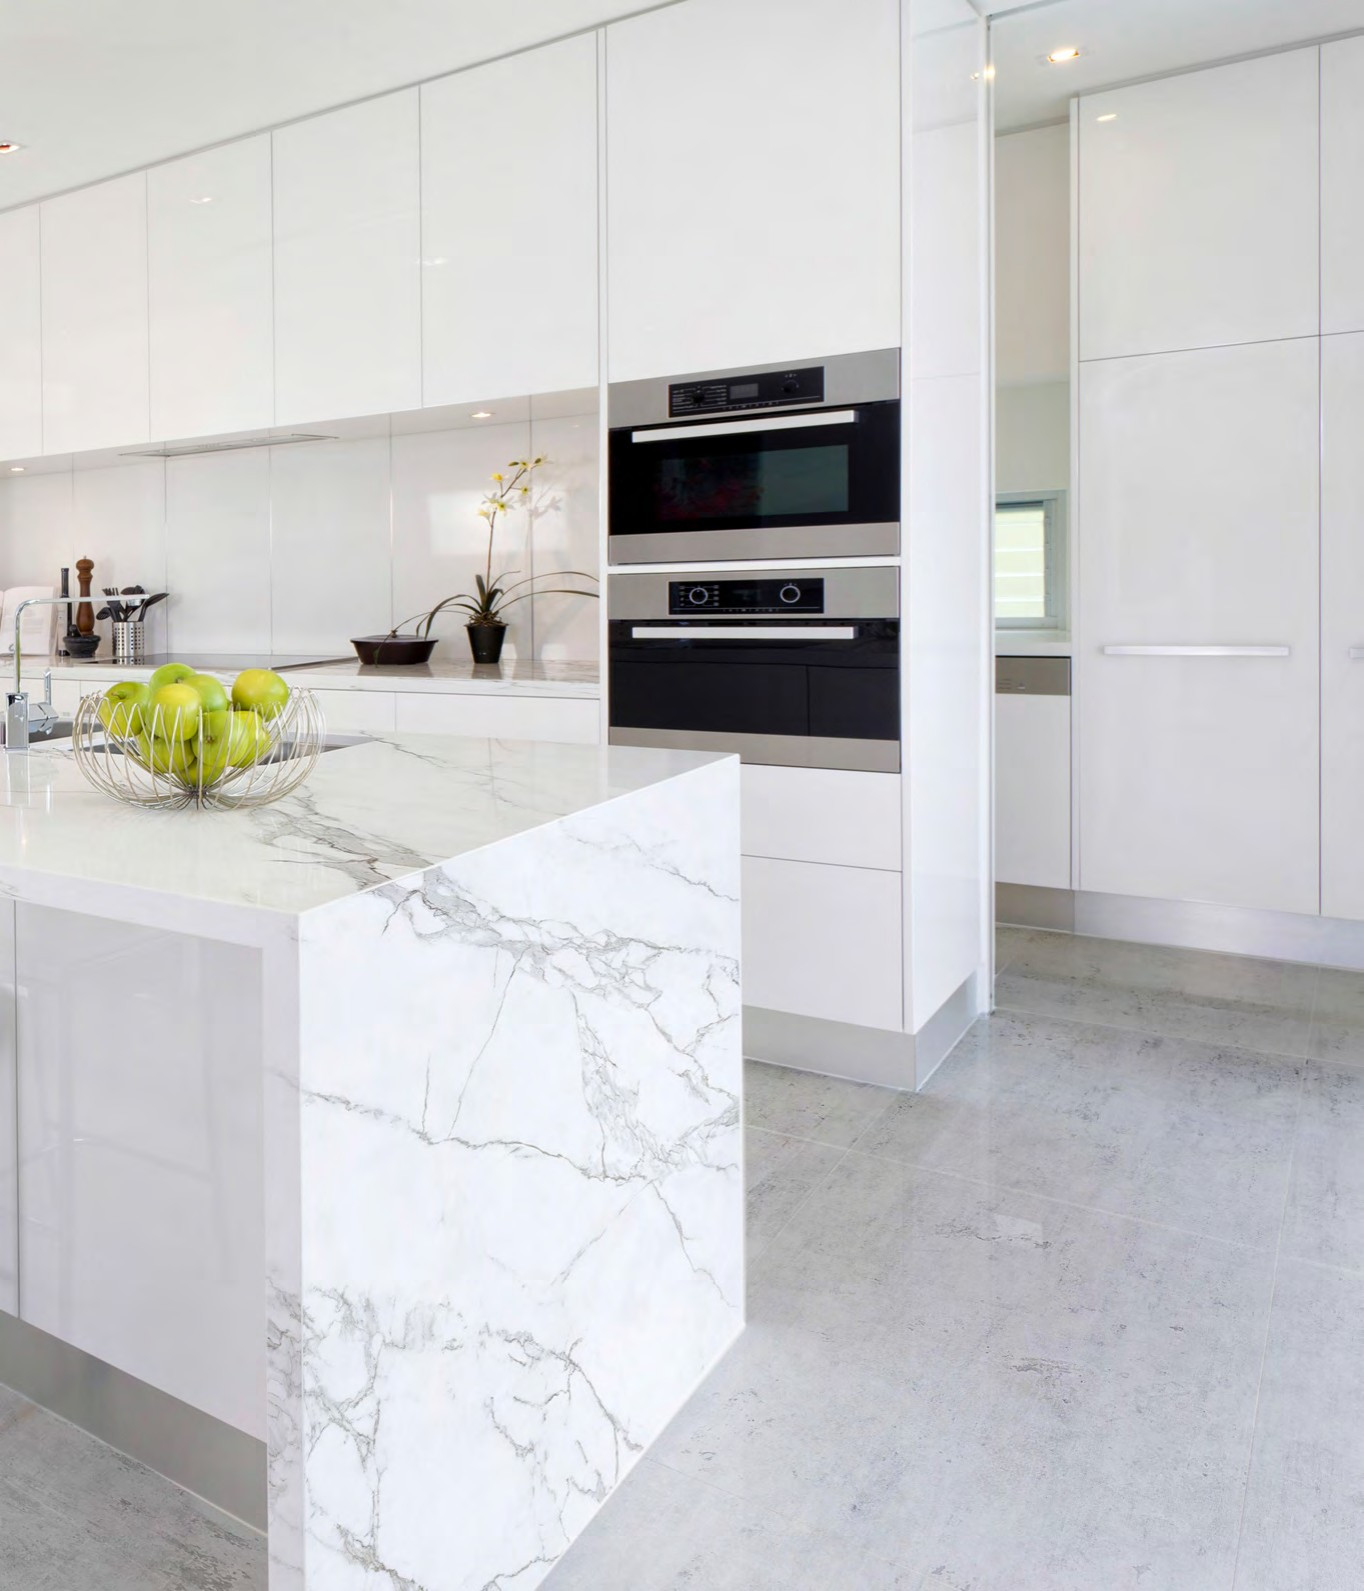 75 Beautiful Porcelain Tile Kitchen Pictures Ideas January 2021 Houzz